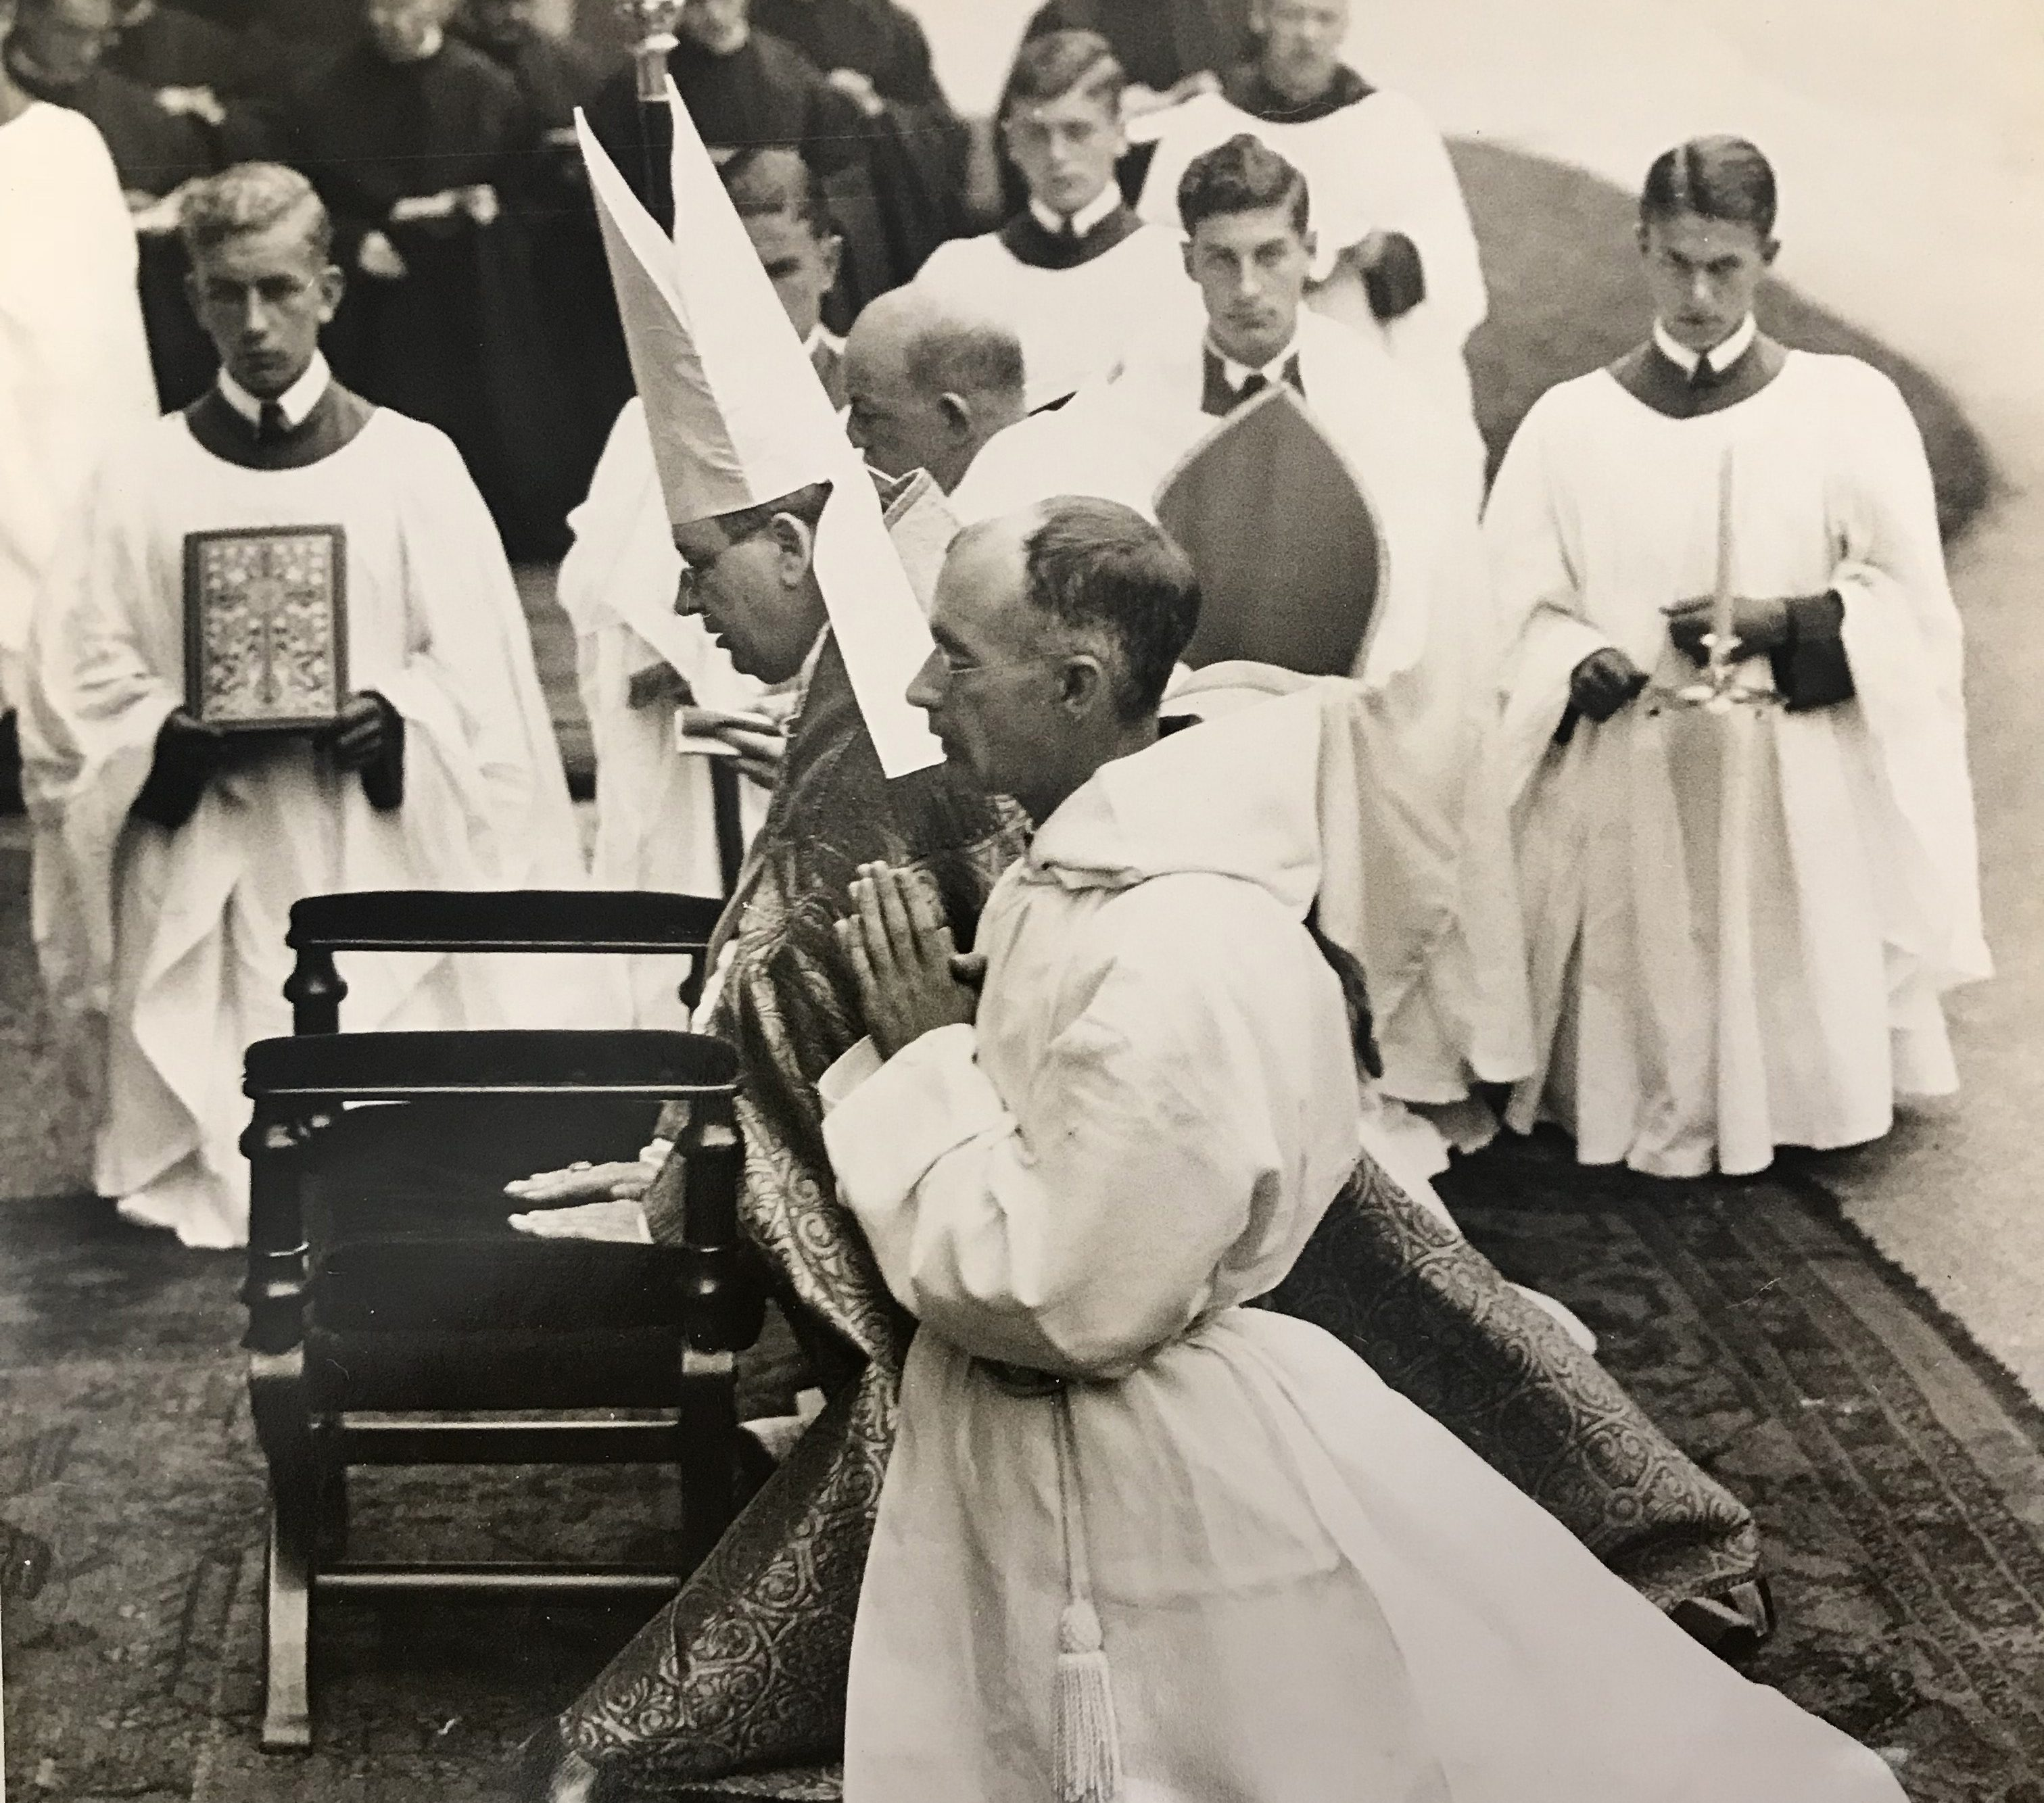 Old photo of priests and monks at Downside Abbey